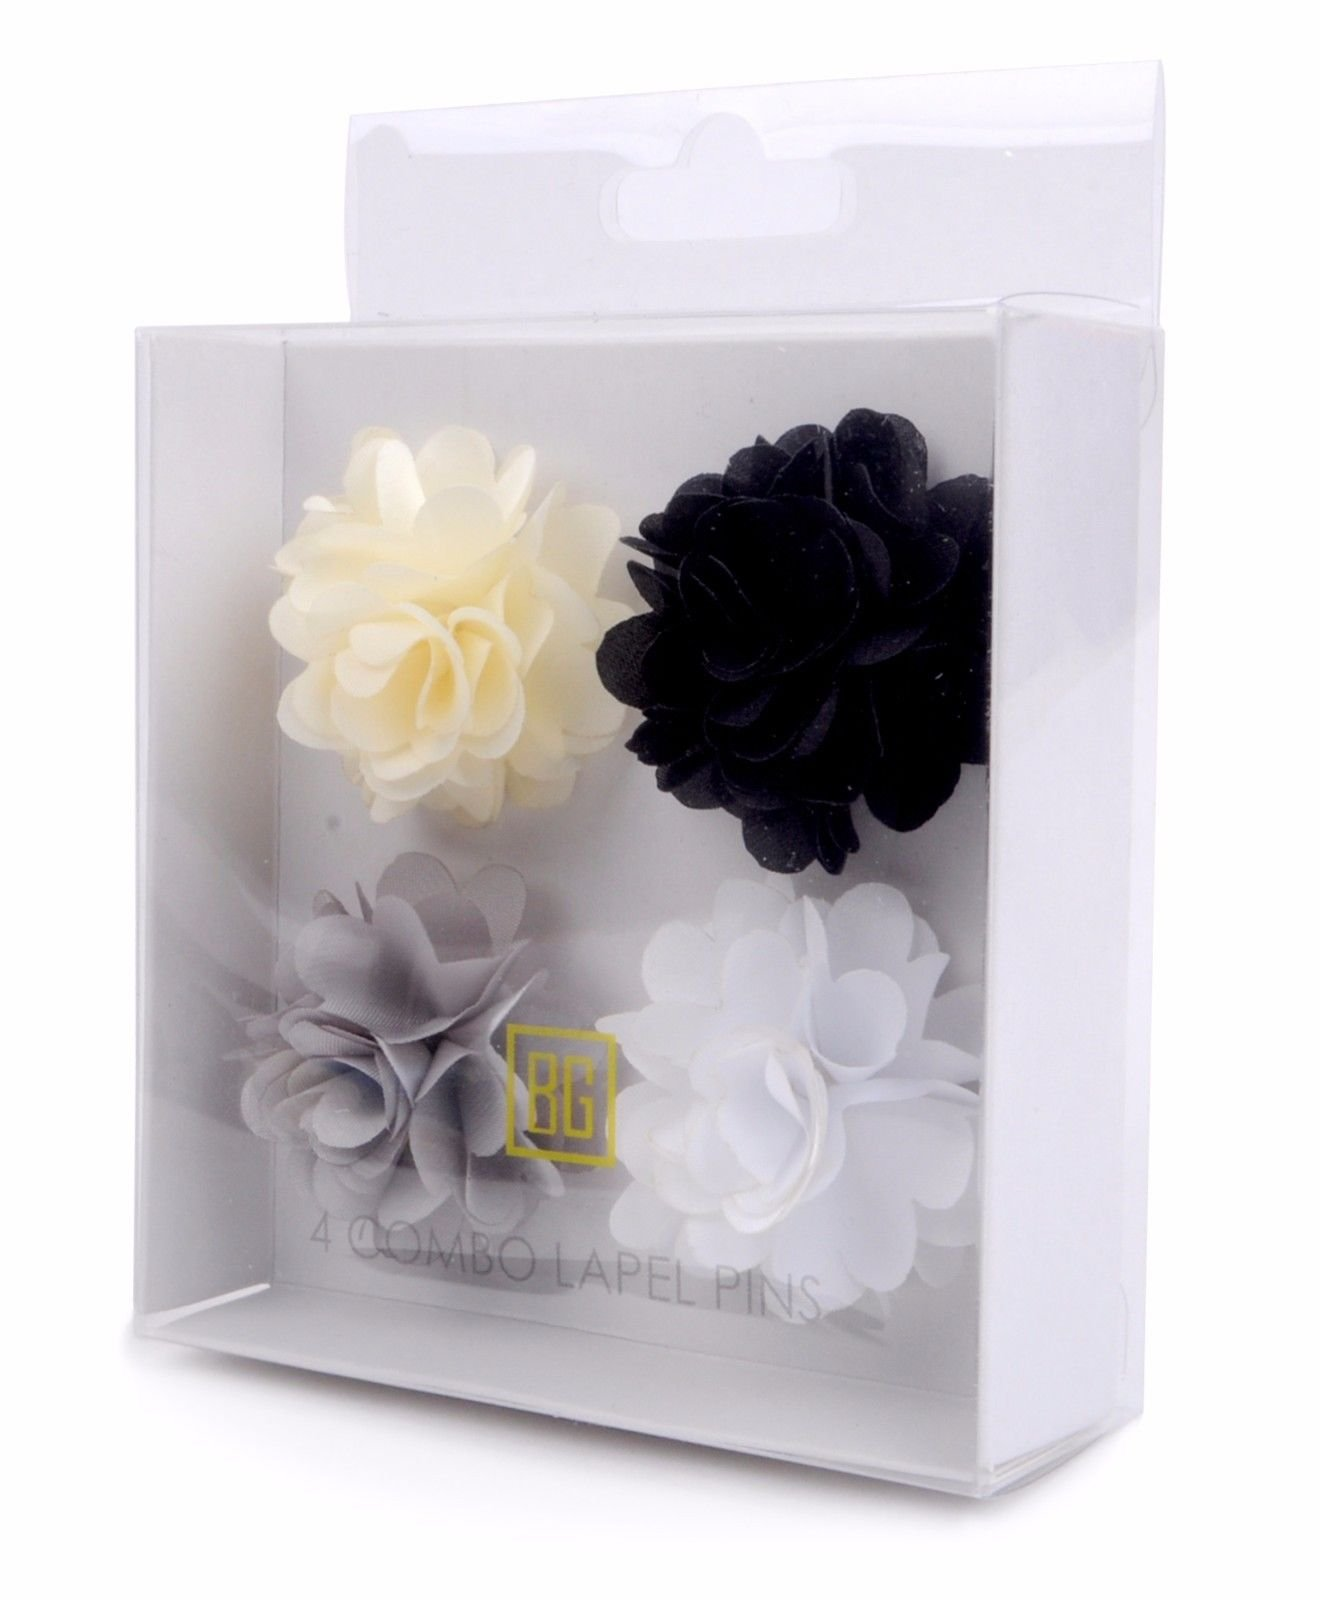 BG-Mini-Bouquet-Clutch-Back-Flower-Tuxedo-Suit-Lapel-Pins-Boutonniere-4-Pack-Set thumbnail 30